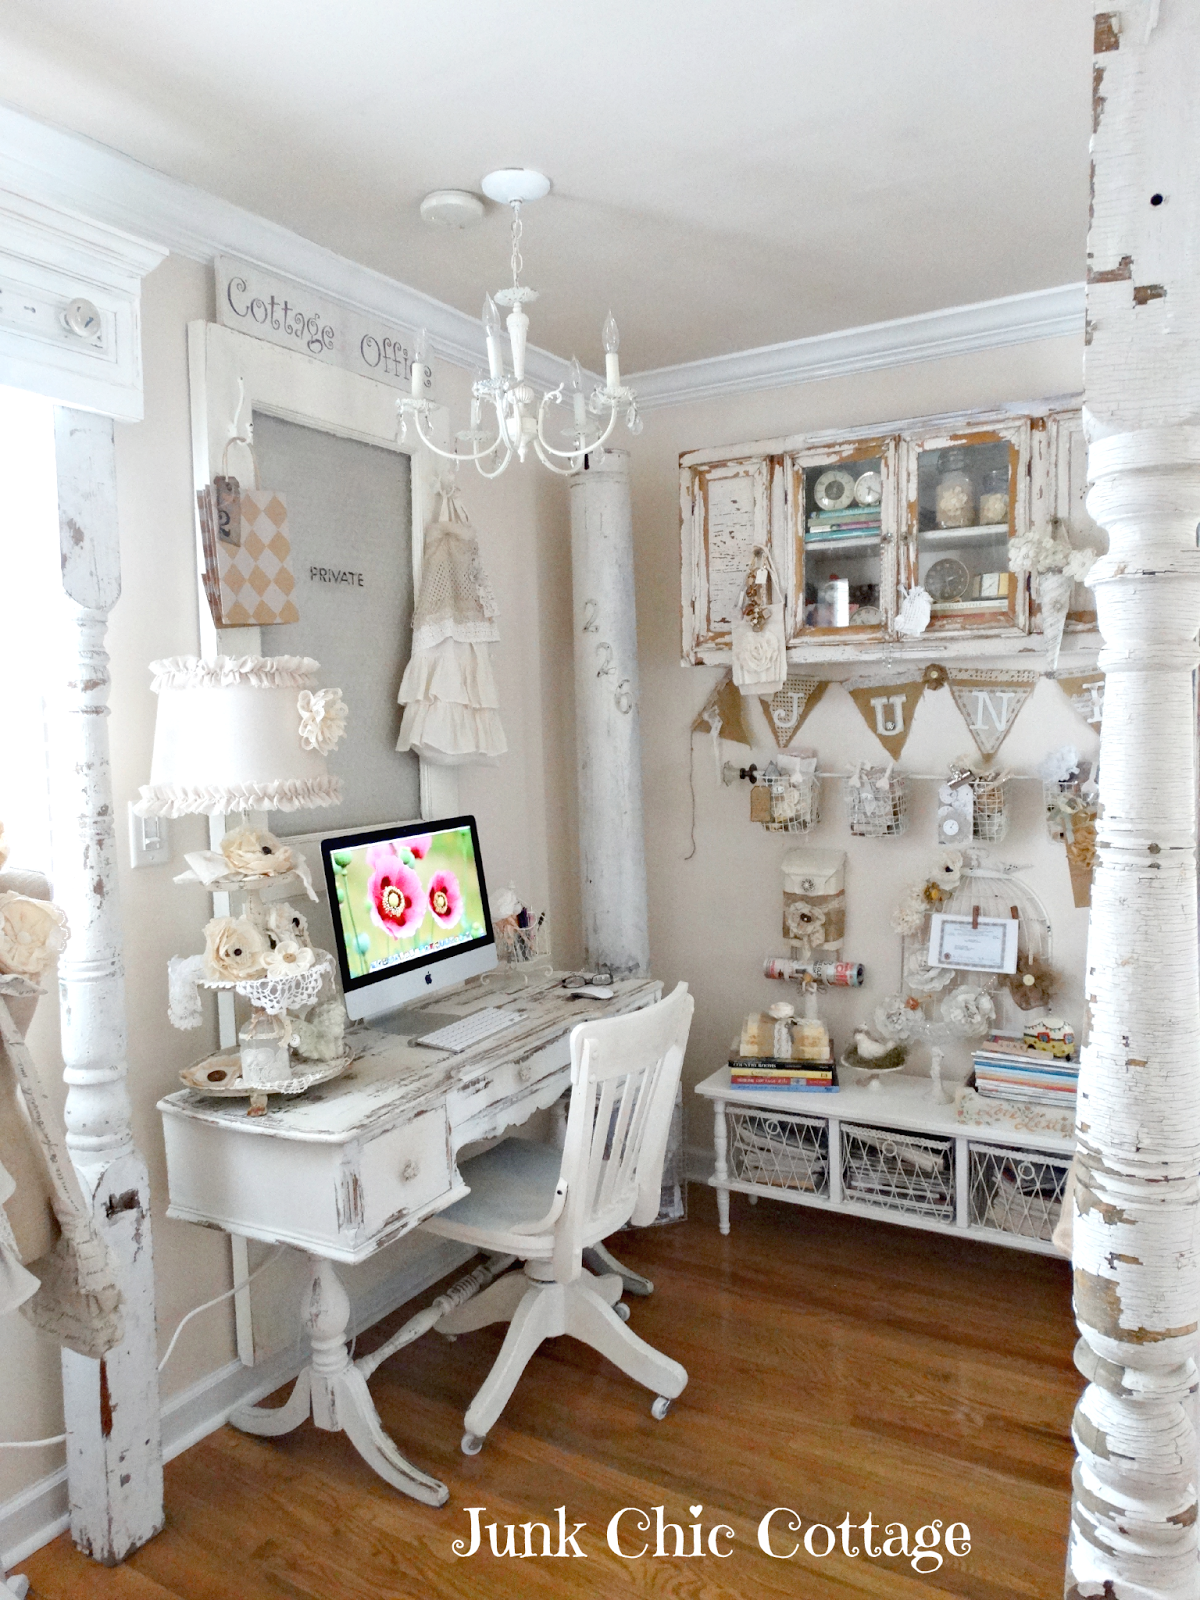 Tour This Amazing Fashion Blogger S Transitional Home Office: Junk Chic Cottage: Where Bloggers Create 6th Annual Blog Party On Creative Spaces.